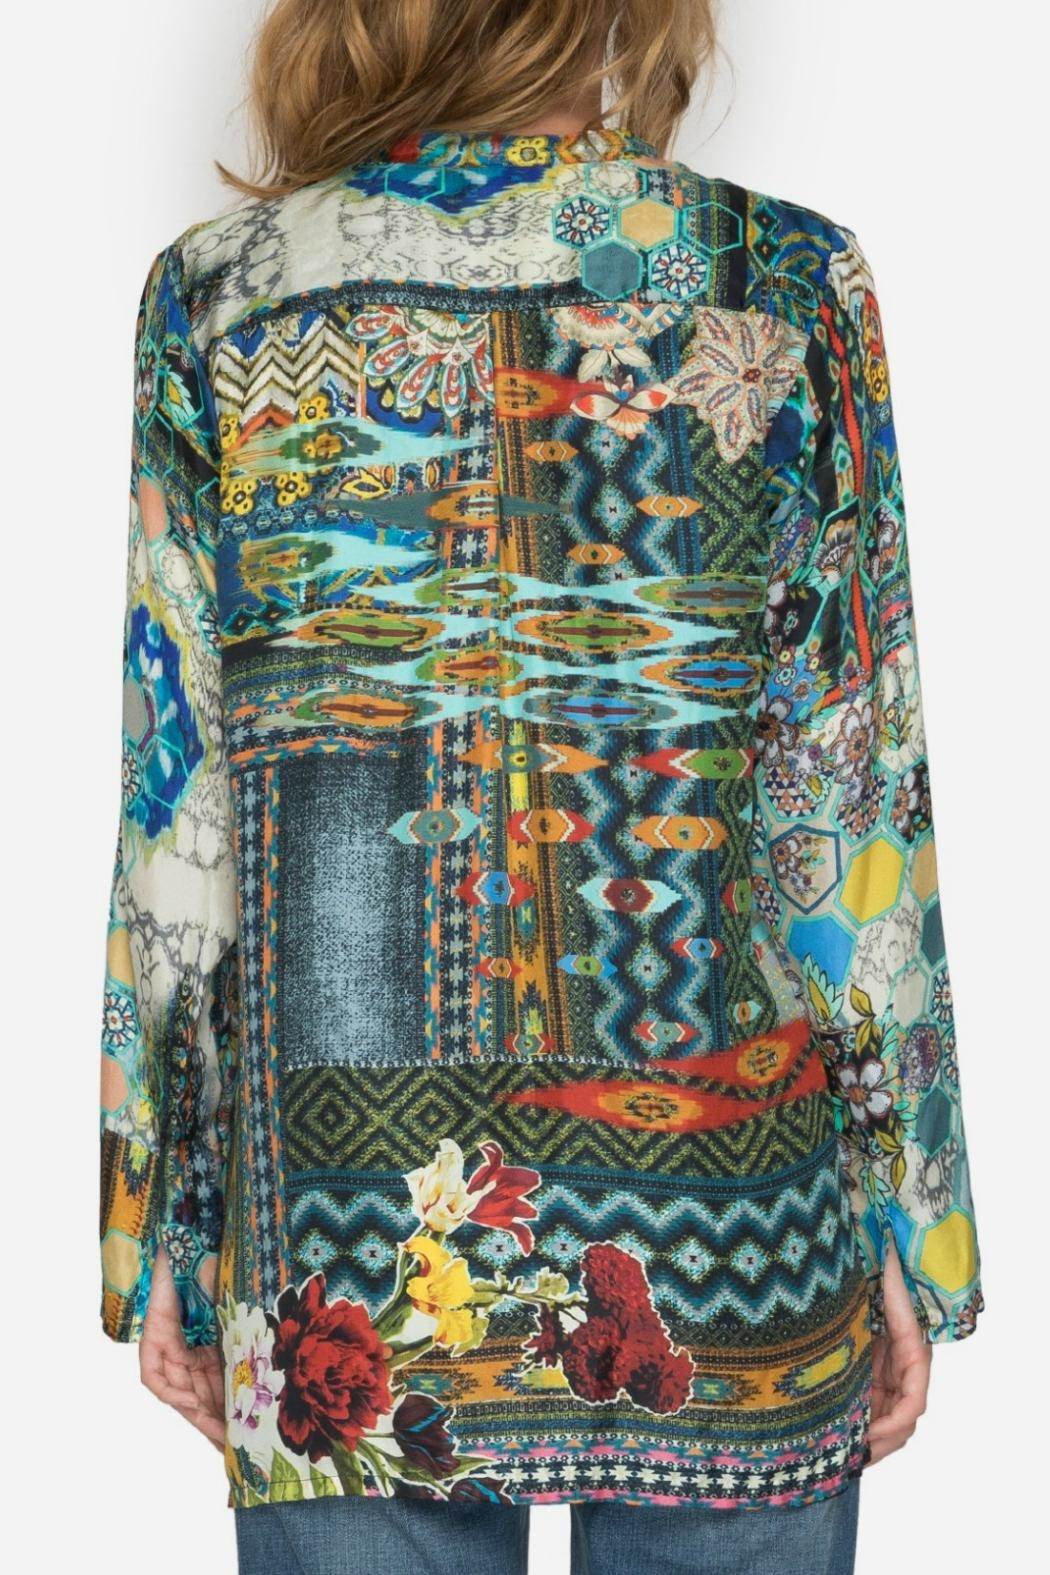 Johnny Was Kaleidoscope Print Blouse - Front Full Image